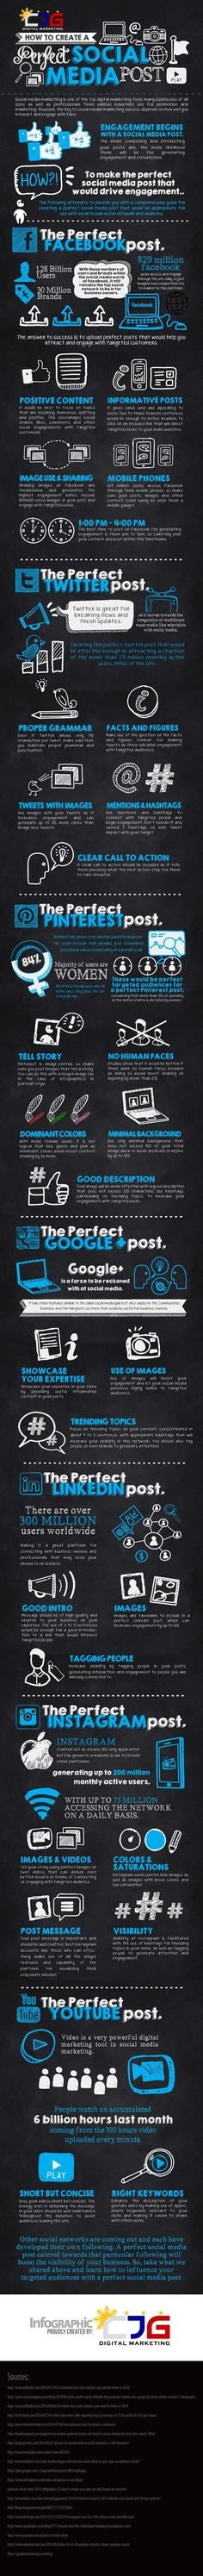 How to Create a Perfect Social Media Post [Infographic] - The Best Tips To Generate Interesting And Engaging Posts On The Top 7 Social Media Networks - Marketing Digital, Internet Marketing, Social Media Marketing, Content Marketing, Online Marketing, Social Media Site, Social Media Content, Social Networks, Info Board